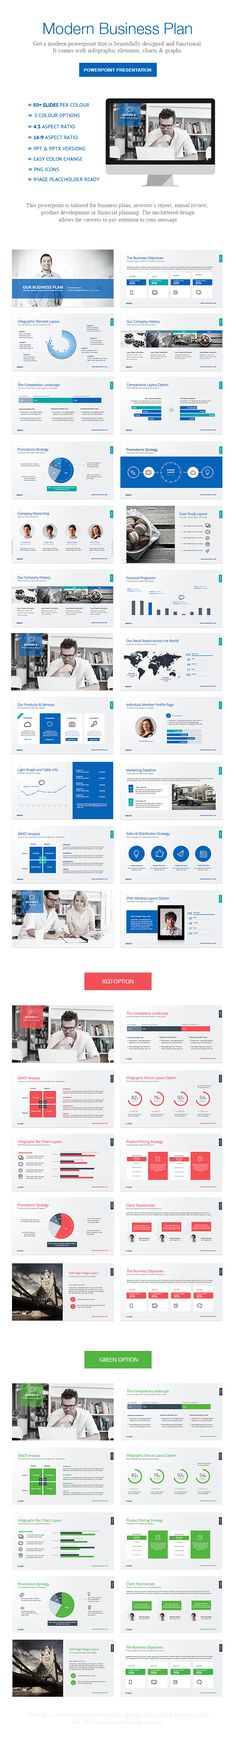 Awesome Slides - Business Powerpoint Templates design   graph - product review template